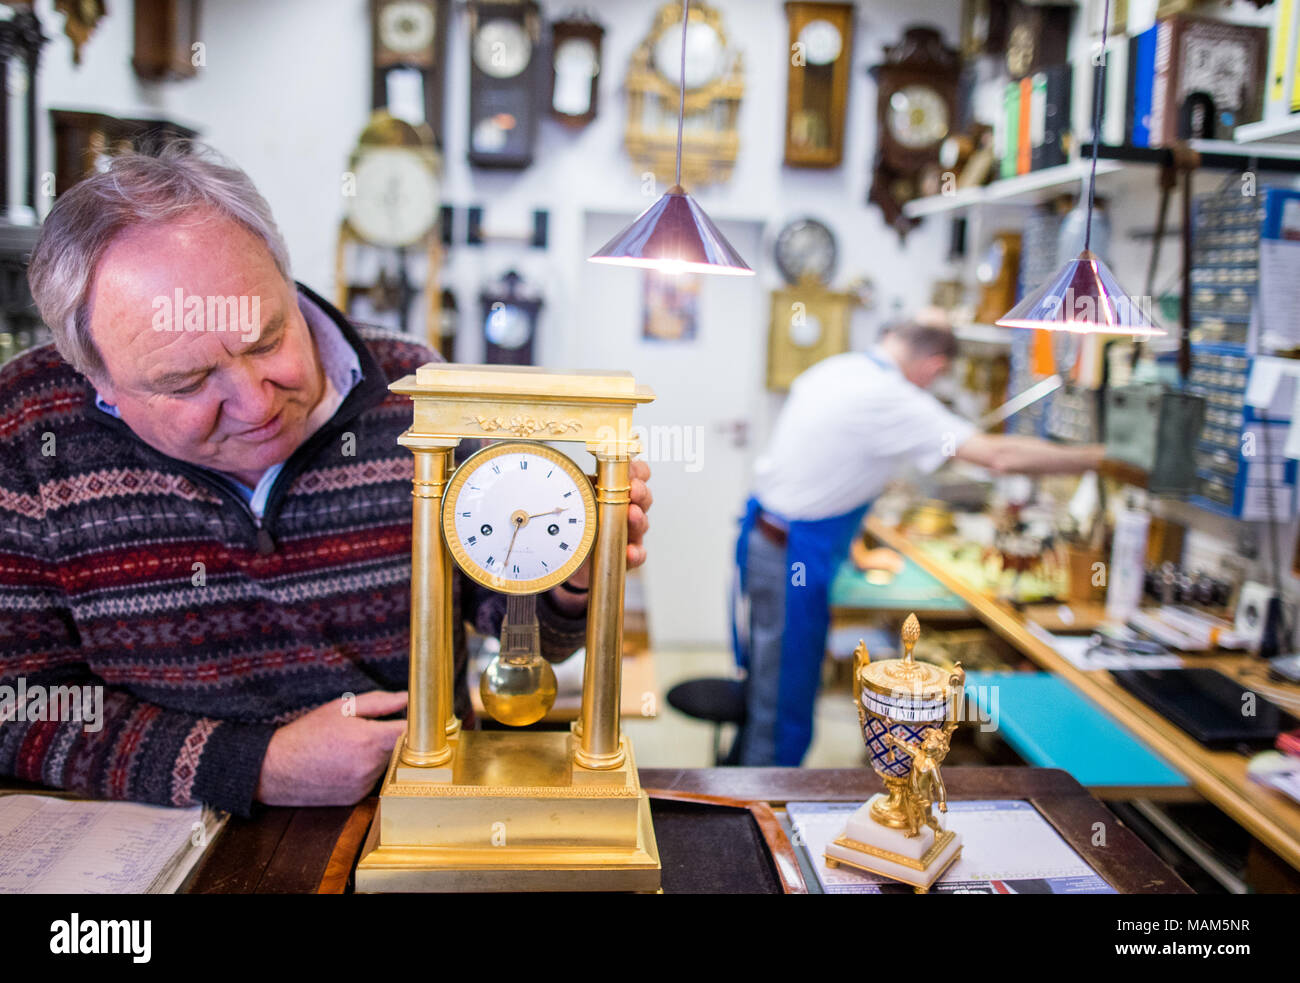 26 February 2018, Germany, Luebeck: A fire-gilded mantel clock from France from the 1810s, part of the collection of functional antique clocks that master clockmaker Norbert Schmidt has put together in his workshop 'Klokkenmaker' in Luebeck. The clock expert has auctioned, bought and repaired timepieces around the world in the last few decades. Photo: Jens Büttner/dpa-Zentralbild/dpa - Stock Image